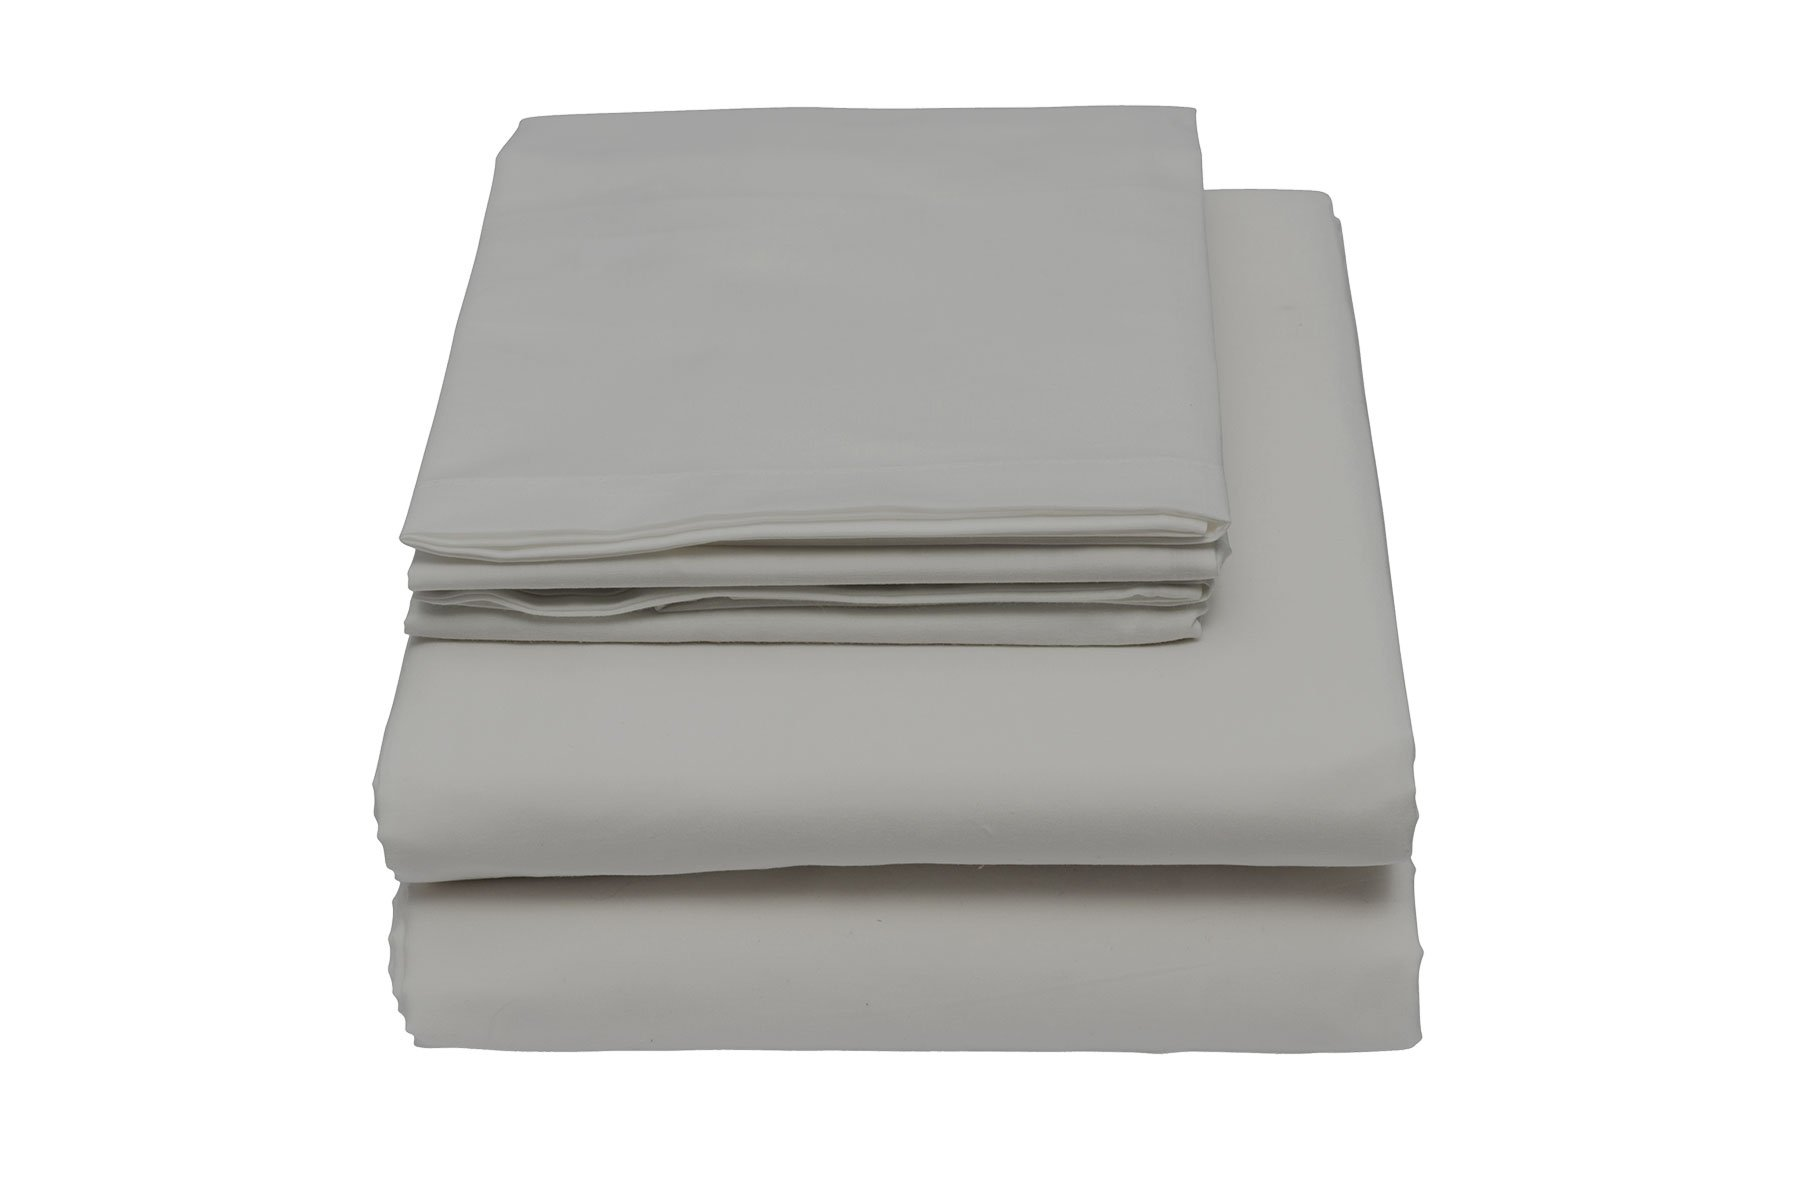 600 Thread Count Sheet Set, 100% Cotton Sateen by Lushulux (Grey, Queen)